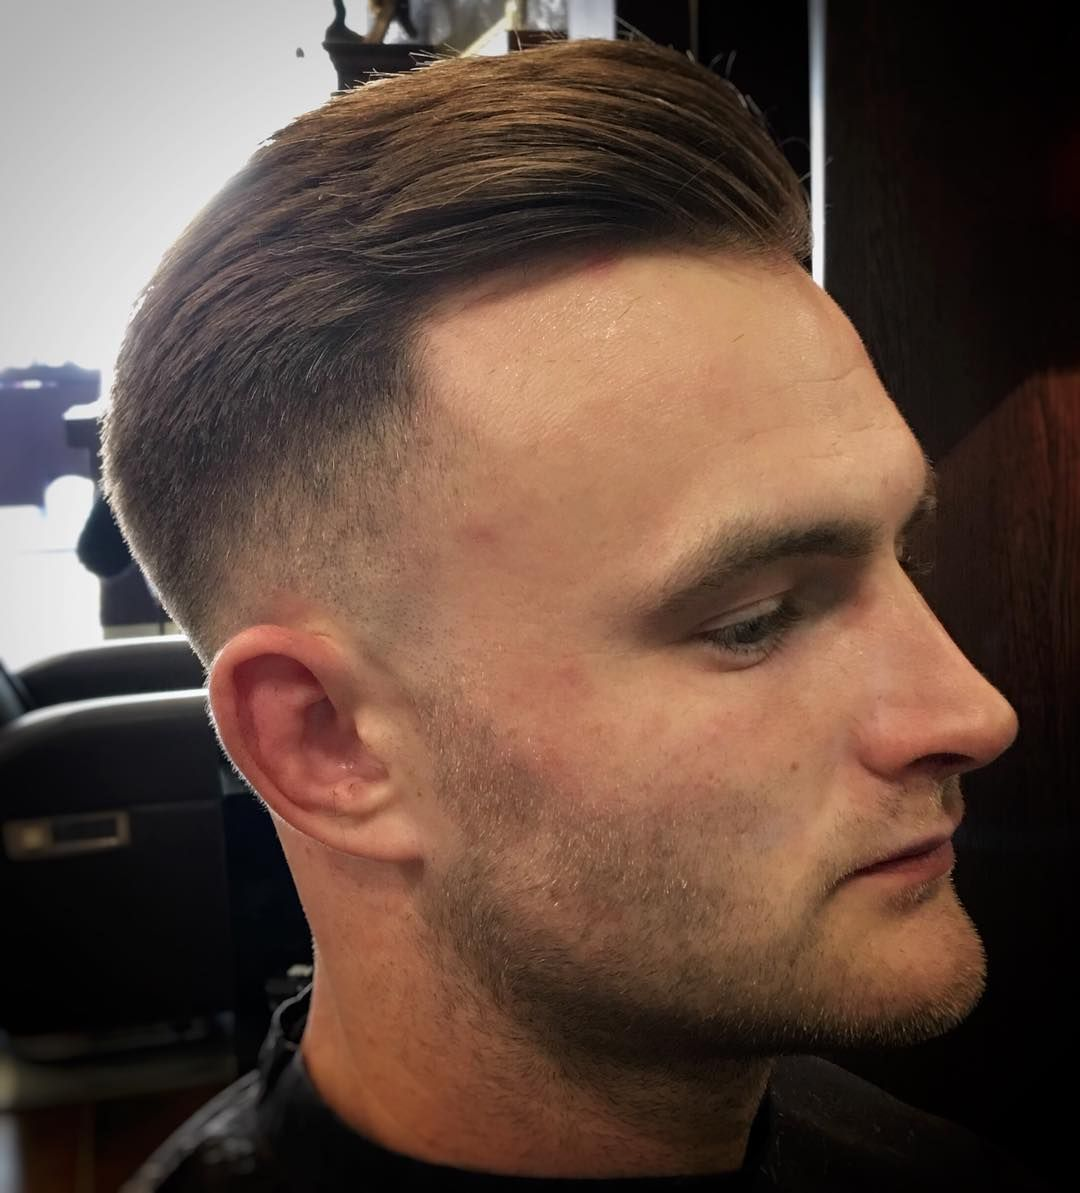 Mens professional haircuts another angle from yesterday skins on lloyddeanjj off to ride my